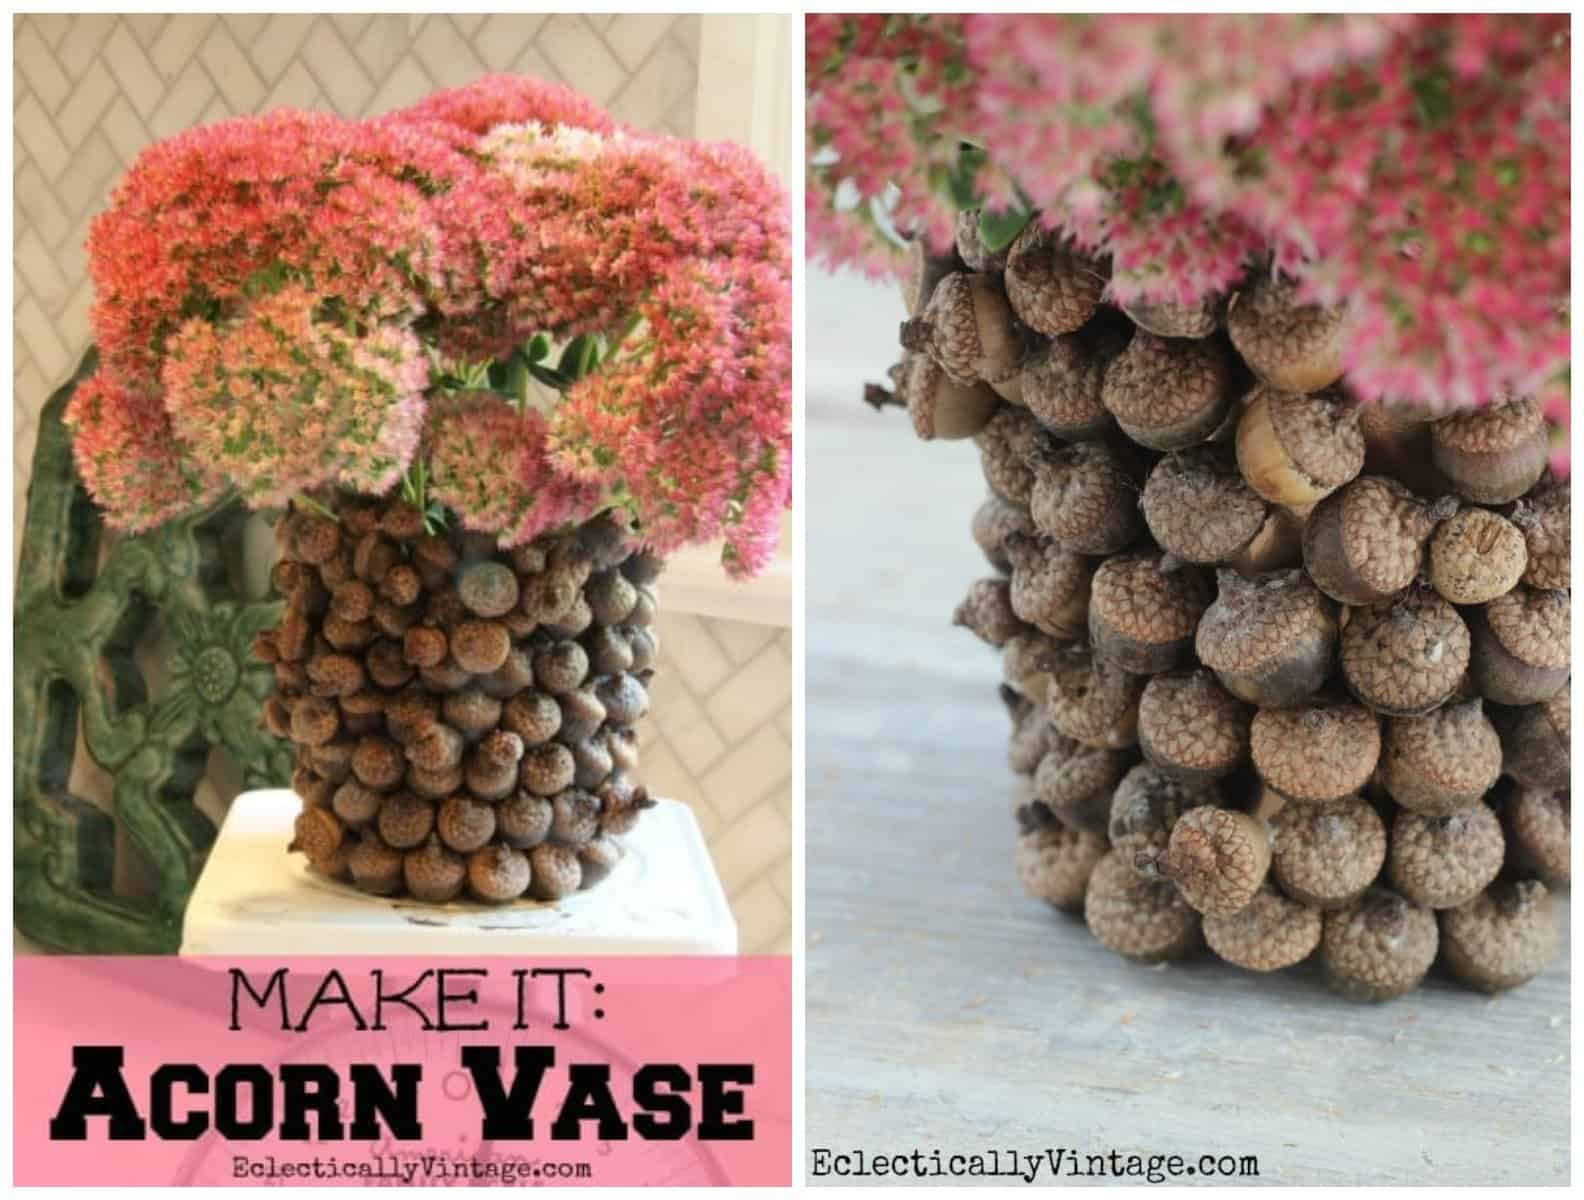 A handmade acorn vase with Autumn Joy sedum cuttings.